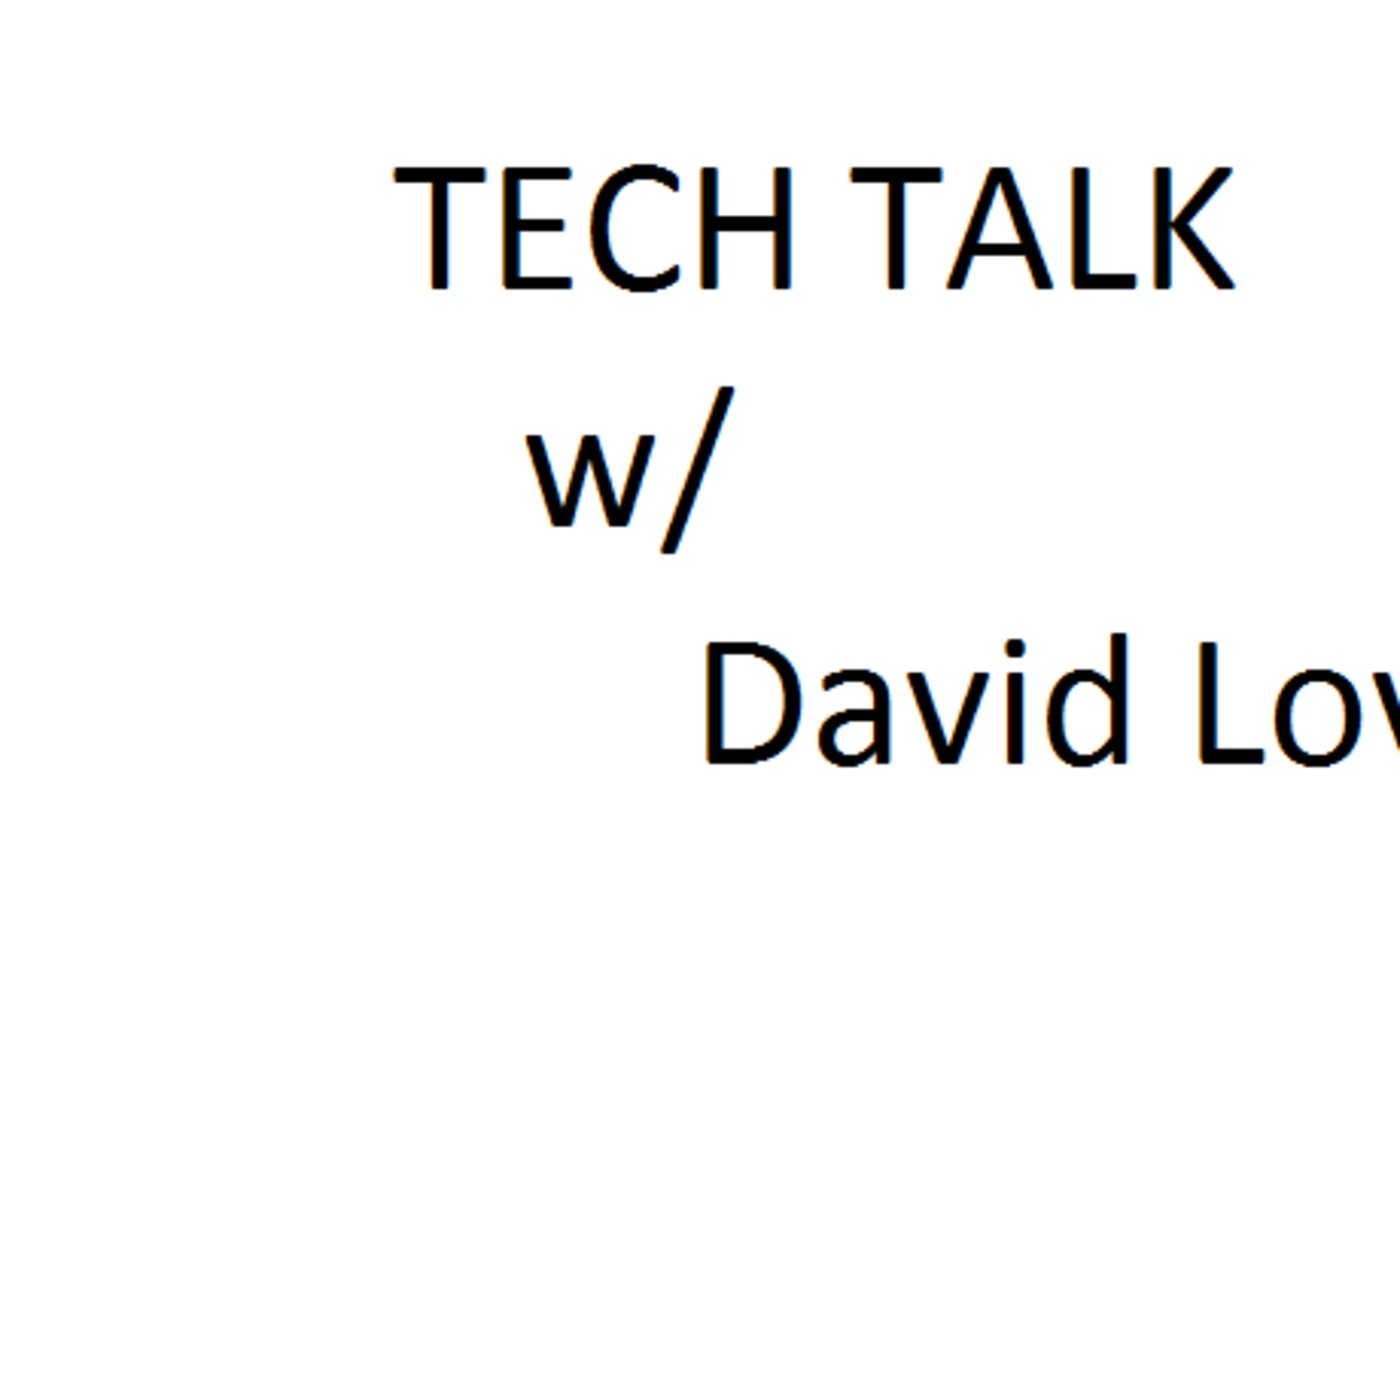 TechTalk w/ David Love